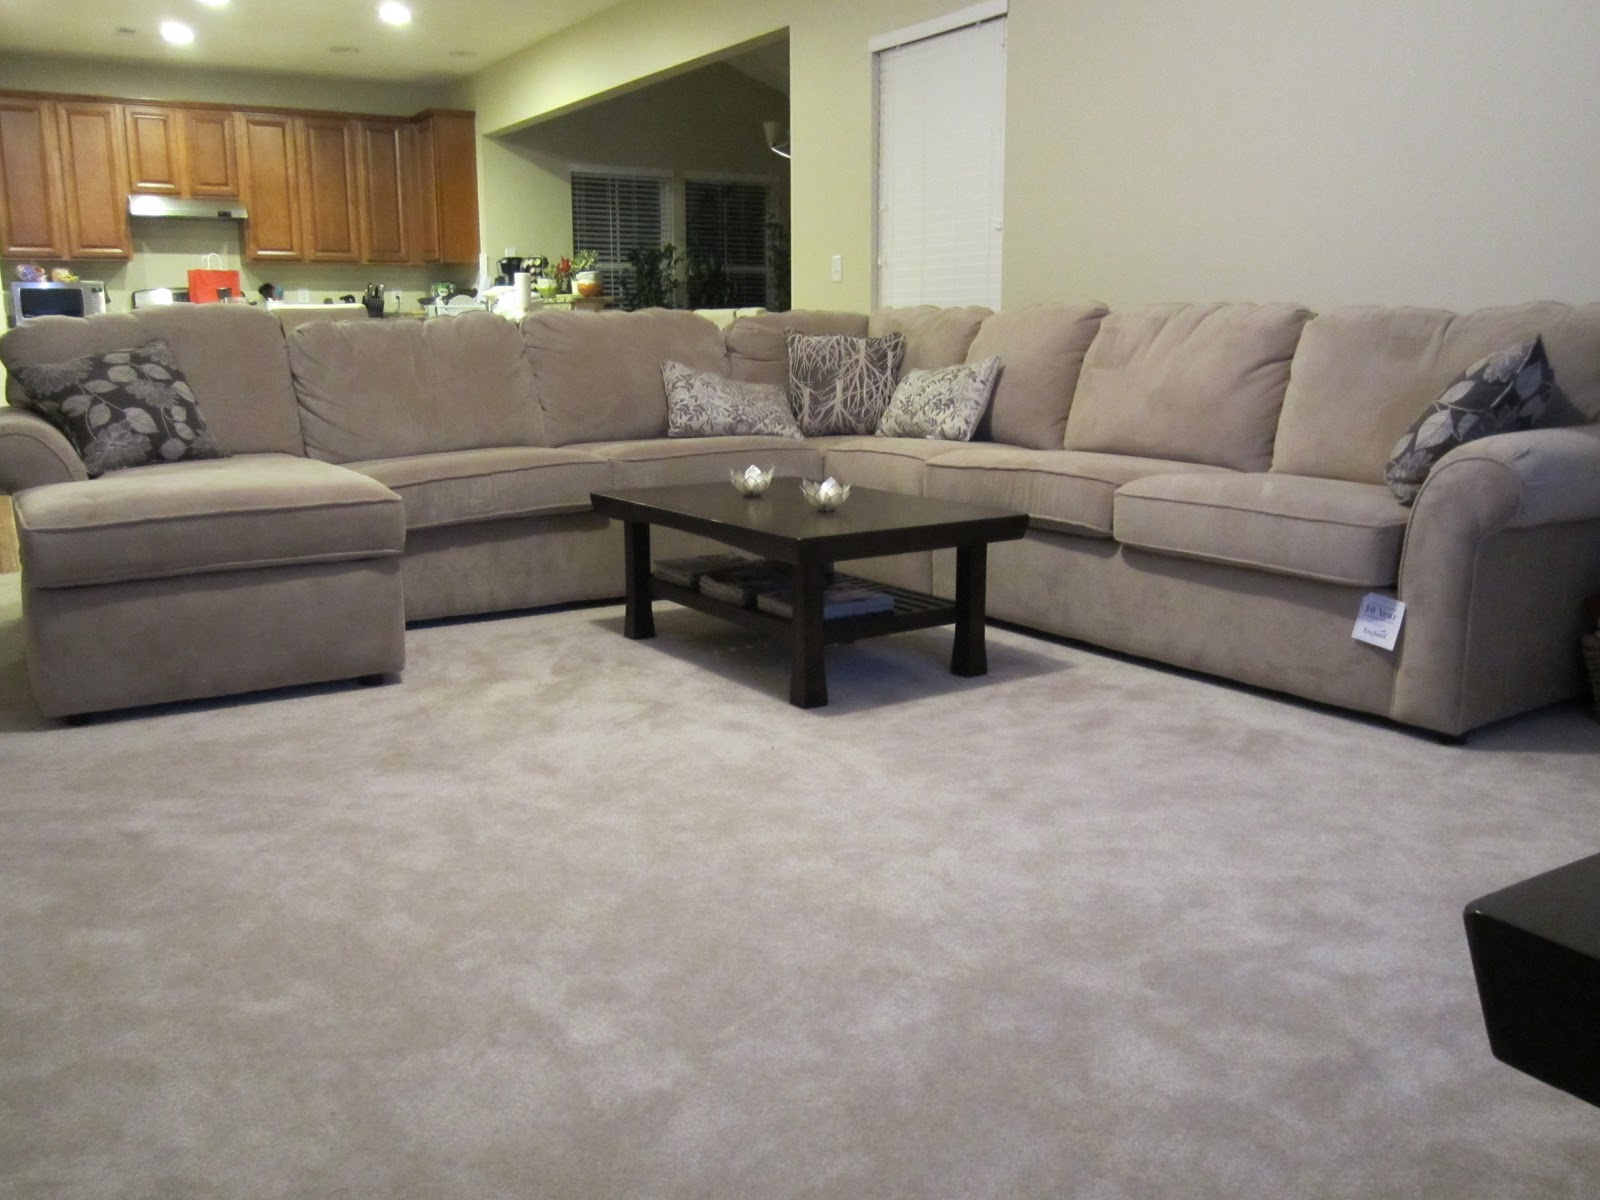 curved with time deep thomasville couches that of couch as sofas are sofa sectional sale grey chaise hours seated recliner for lounge lounging sectionals oversized ready